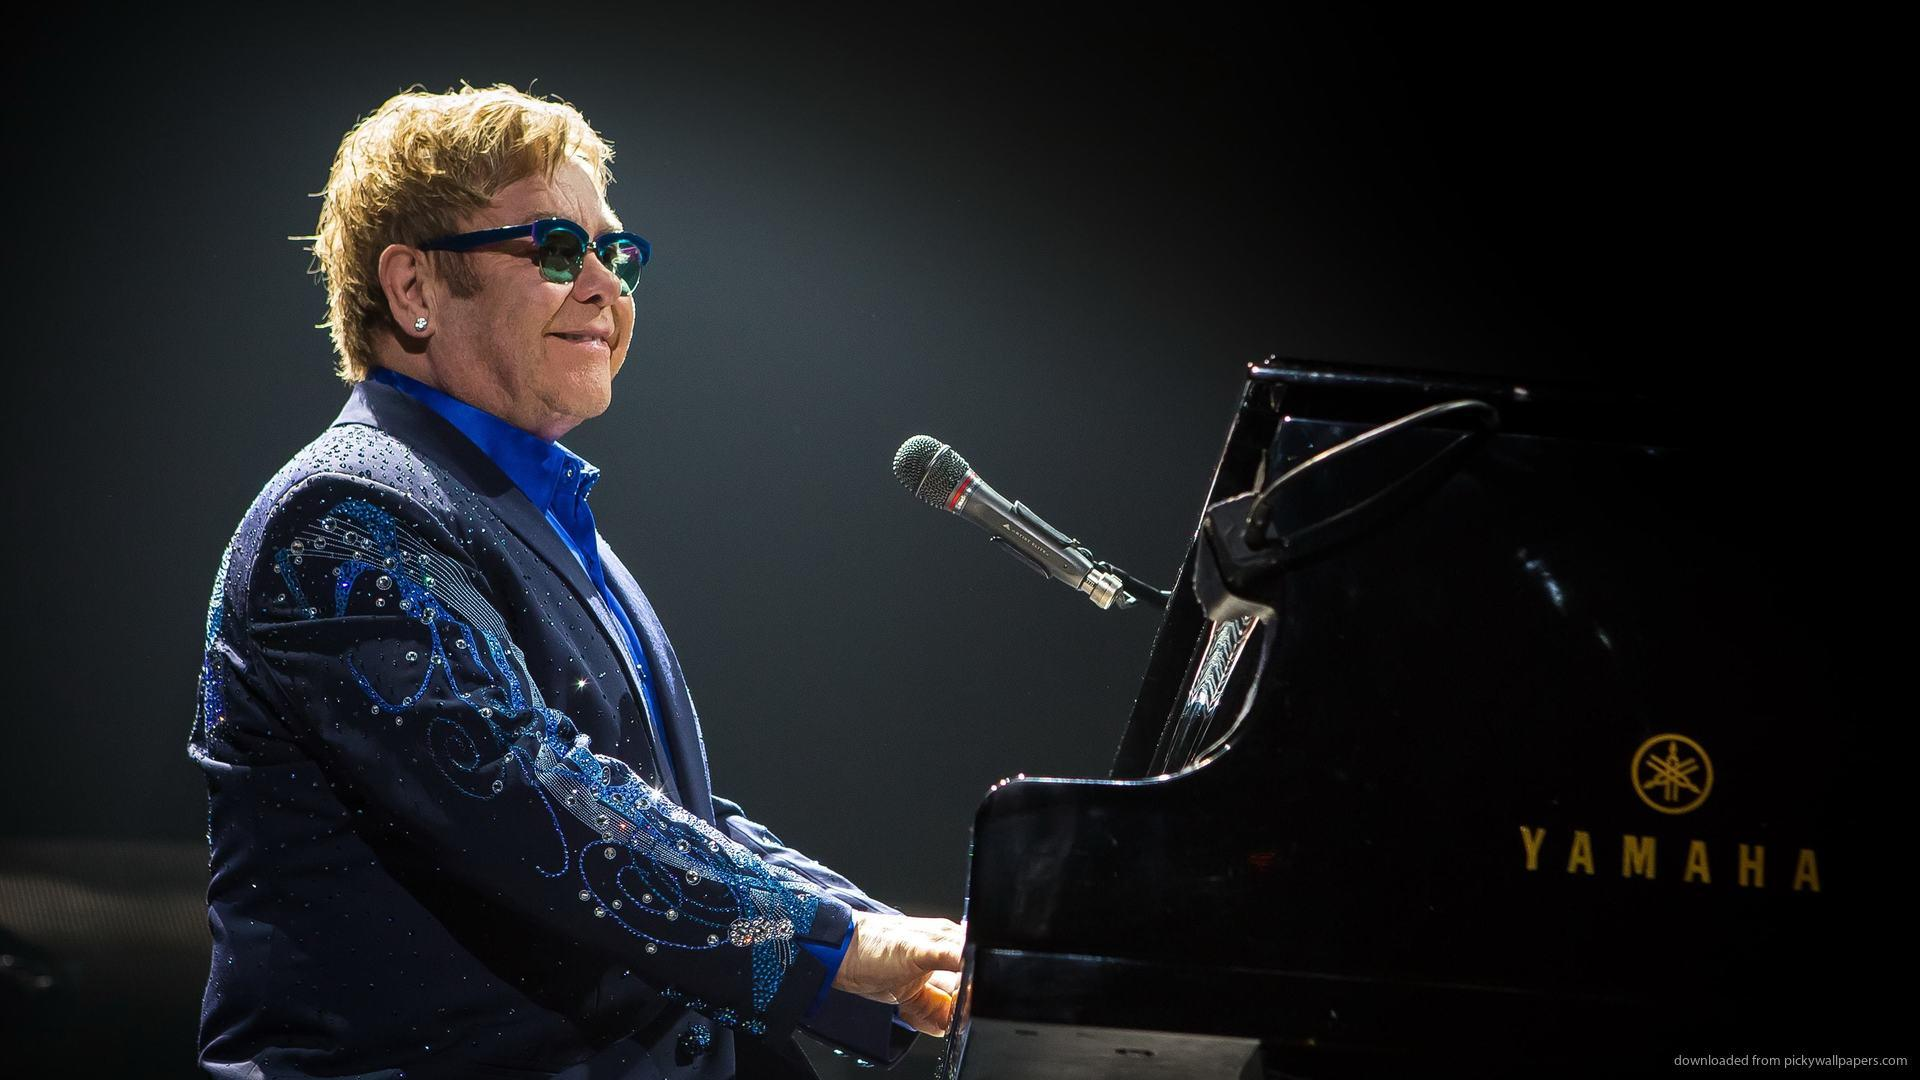 Elton John Widescreen HD Wallpapers Picture For iPhone, Blackberry